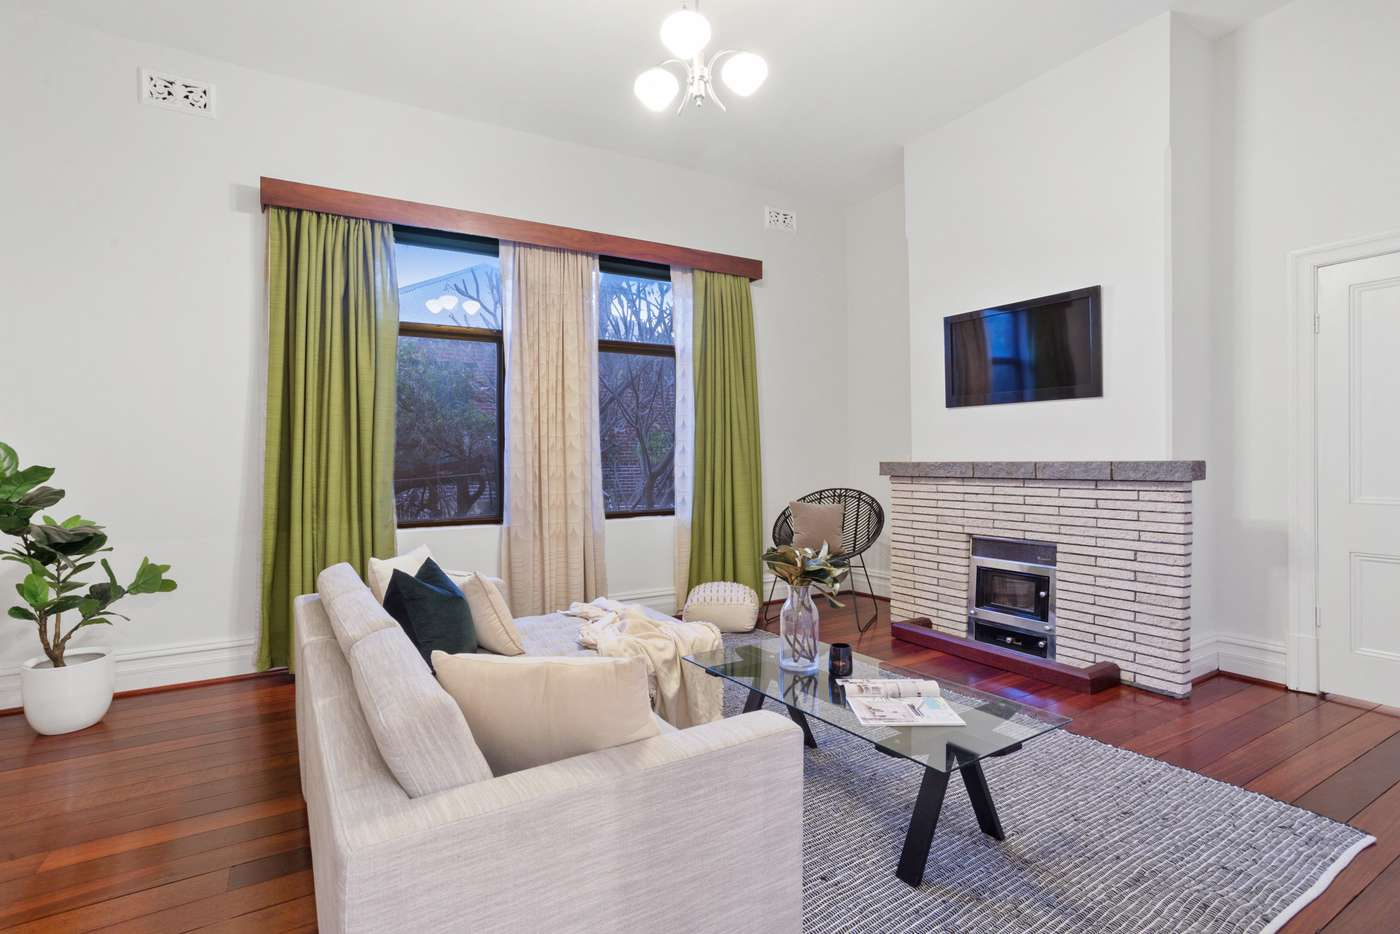 Fifth view of Homely house listing, 123A Chelmsford Road, North Perth WA 6006